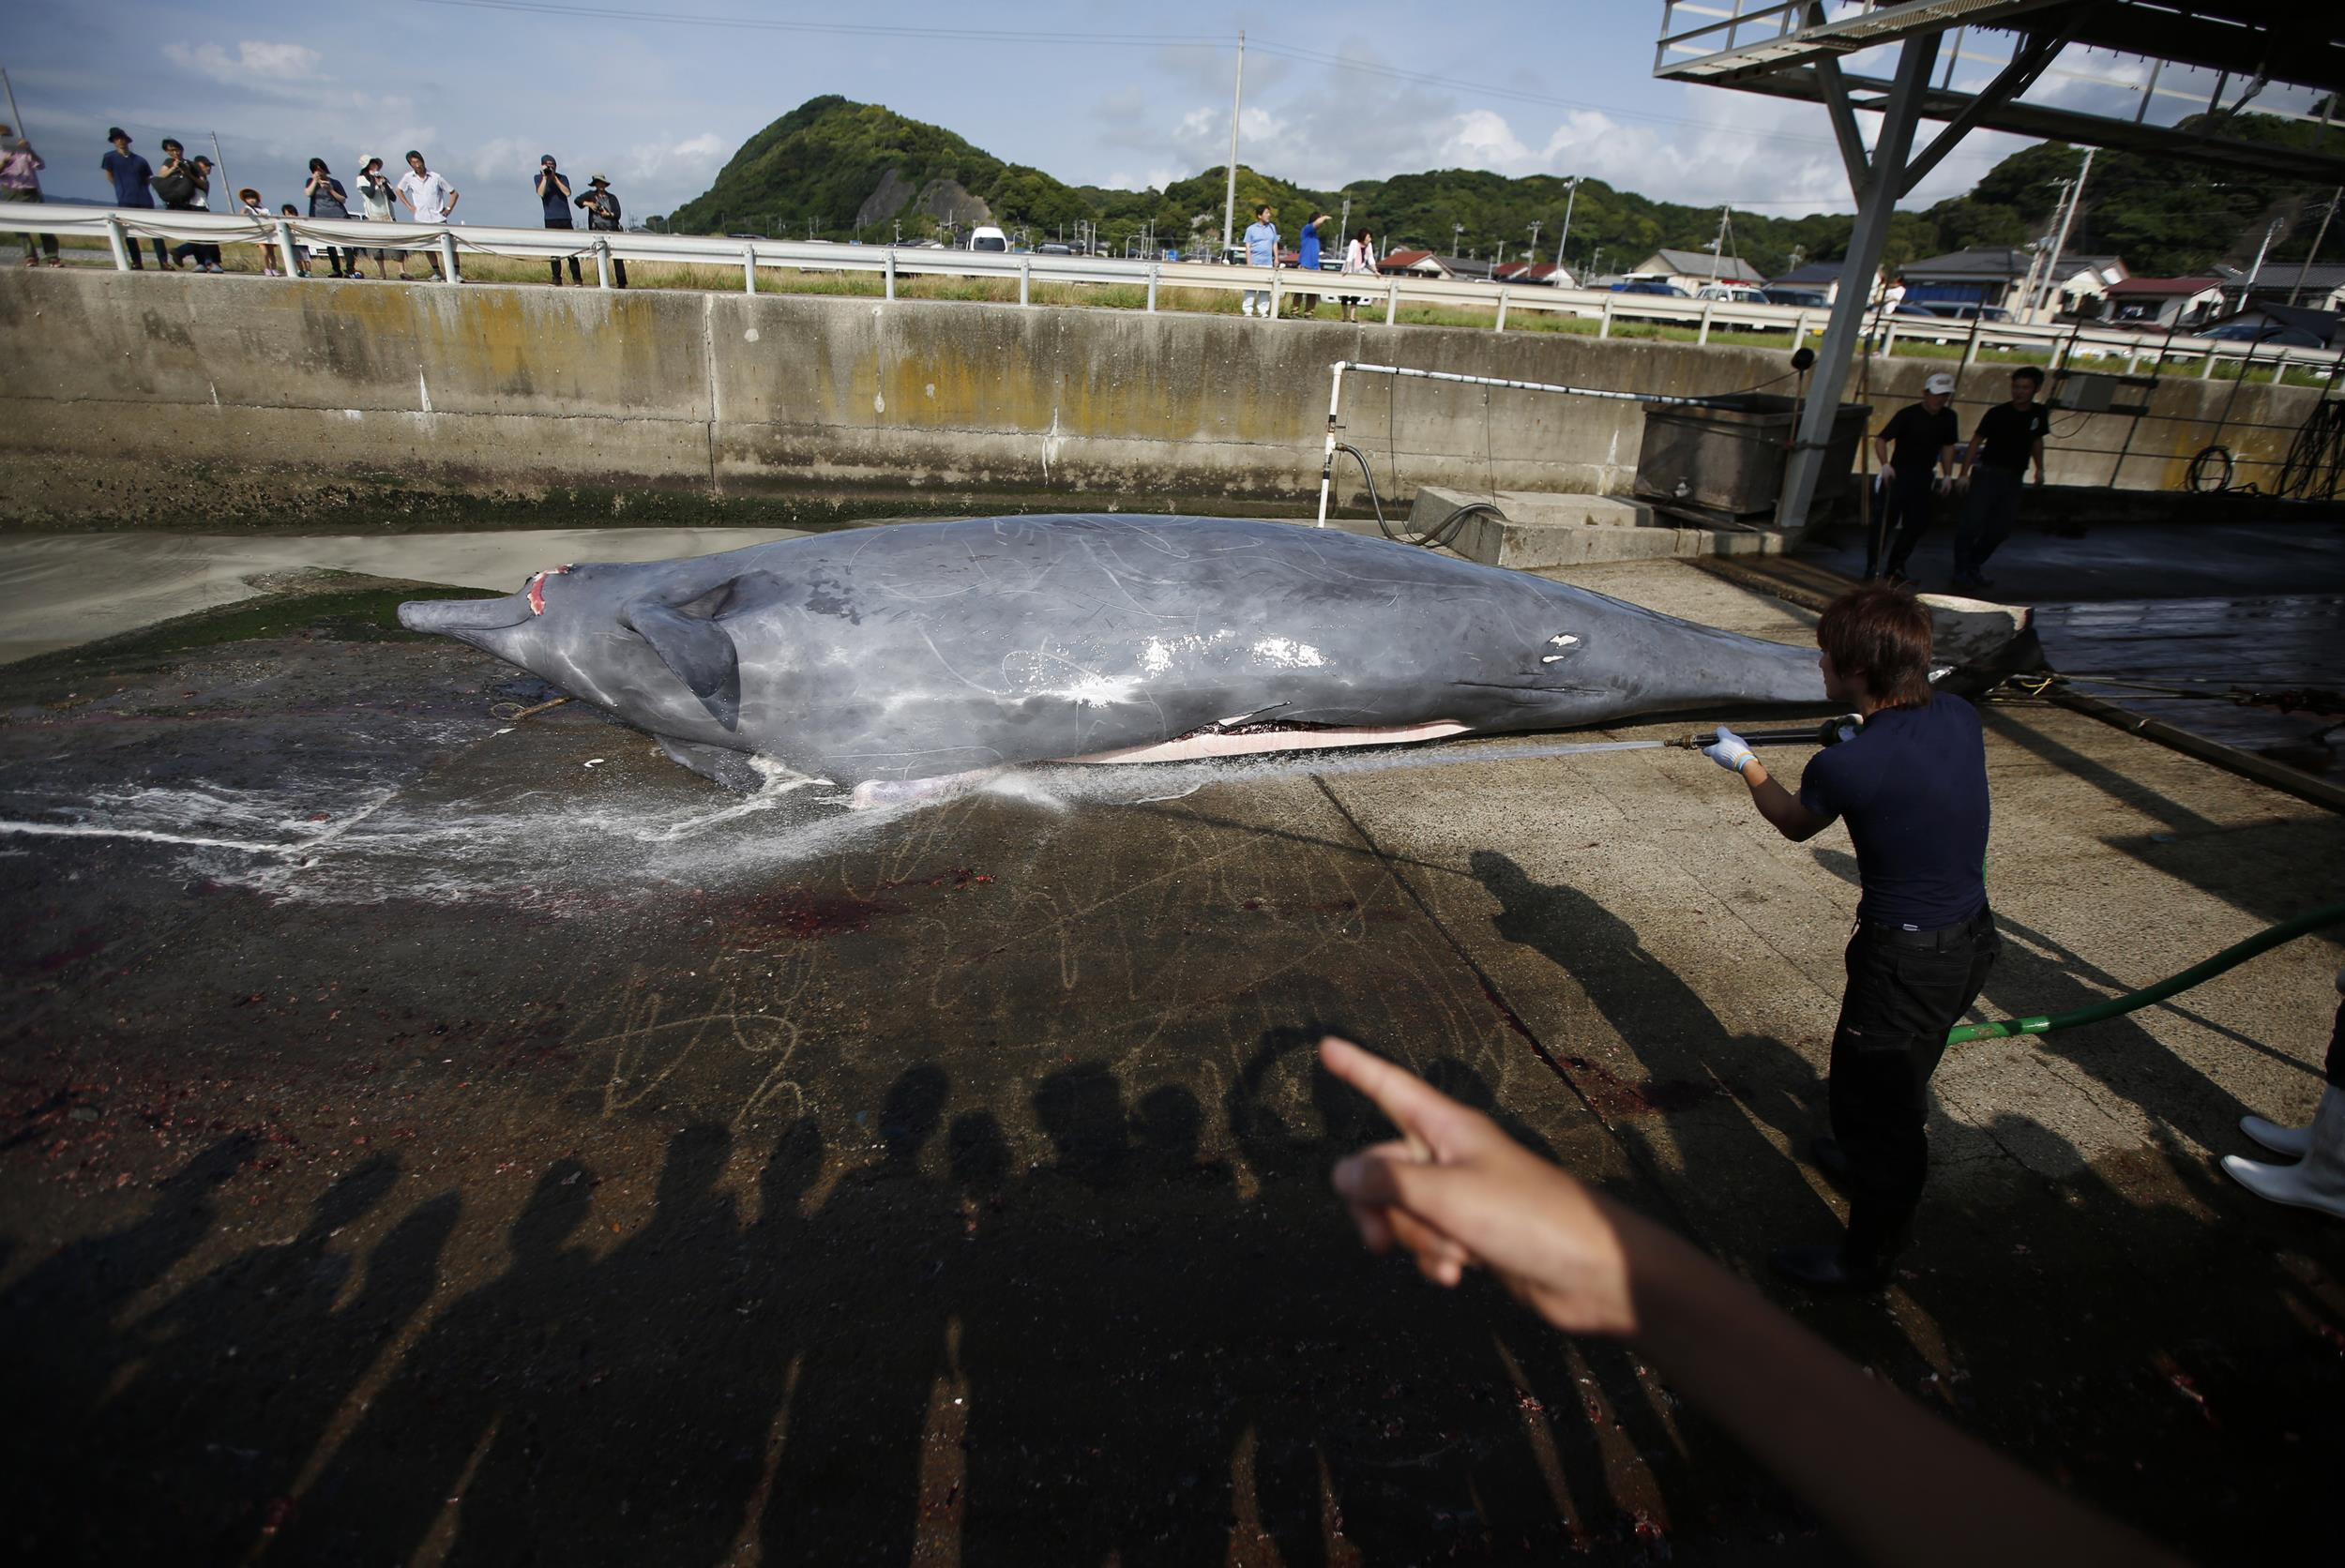 Image: A worker sprays water on a Baird's Beaked whale before butchering it, as shadows of a crowd of grade school students and residents are cast on the ground, at Wada port in Minamiboso